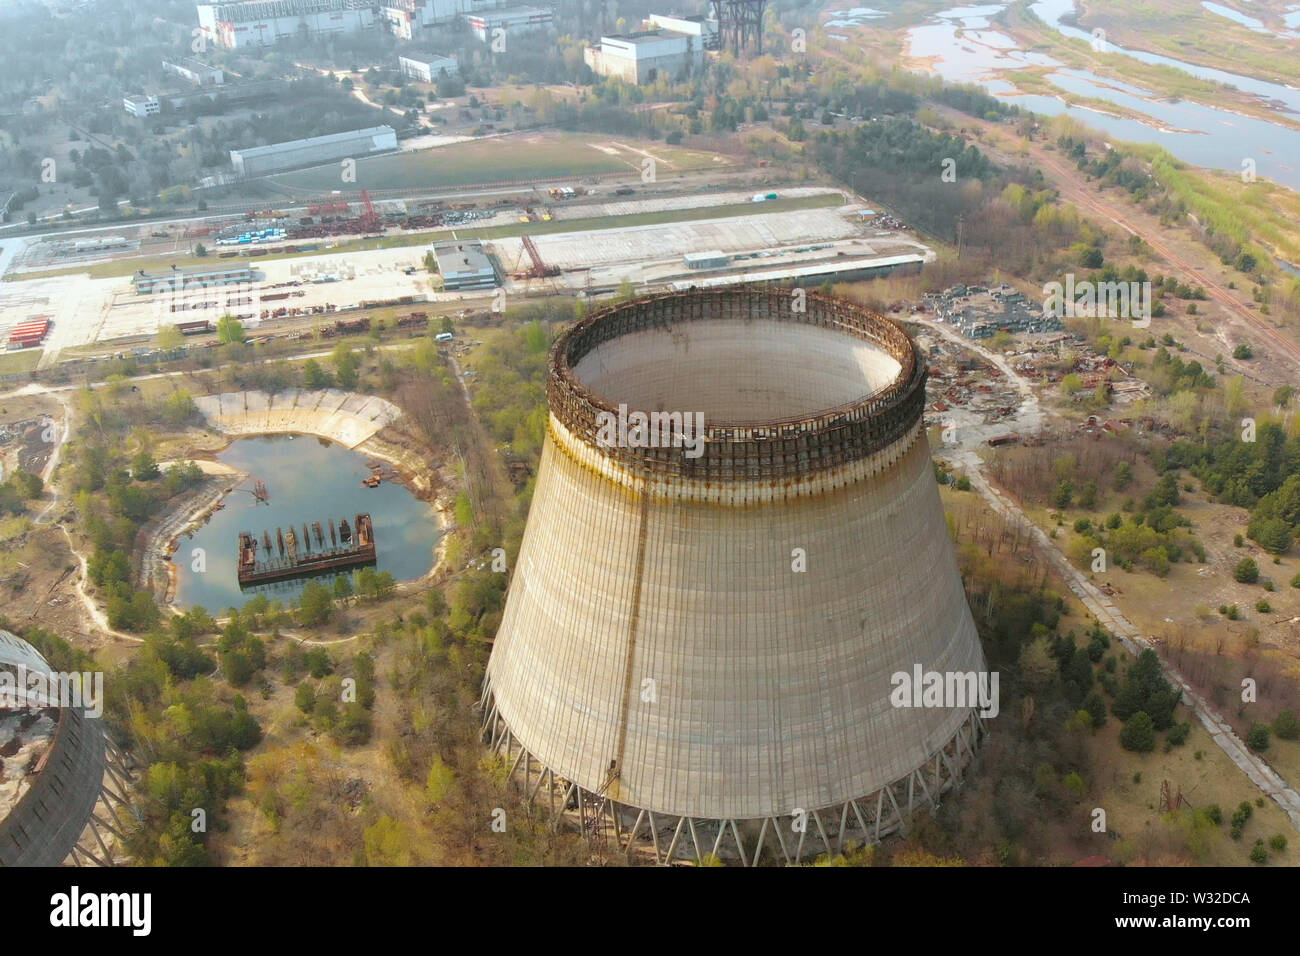 Drone flies over the cooling tower, top view - Stock Image